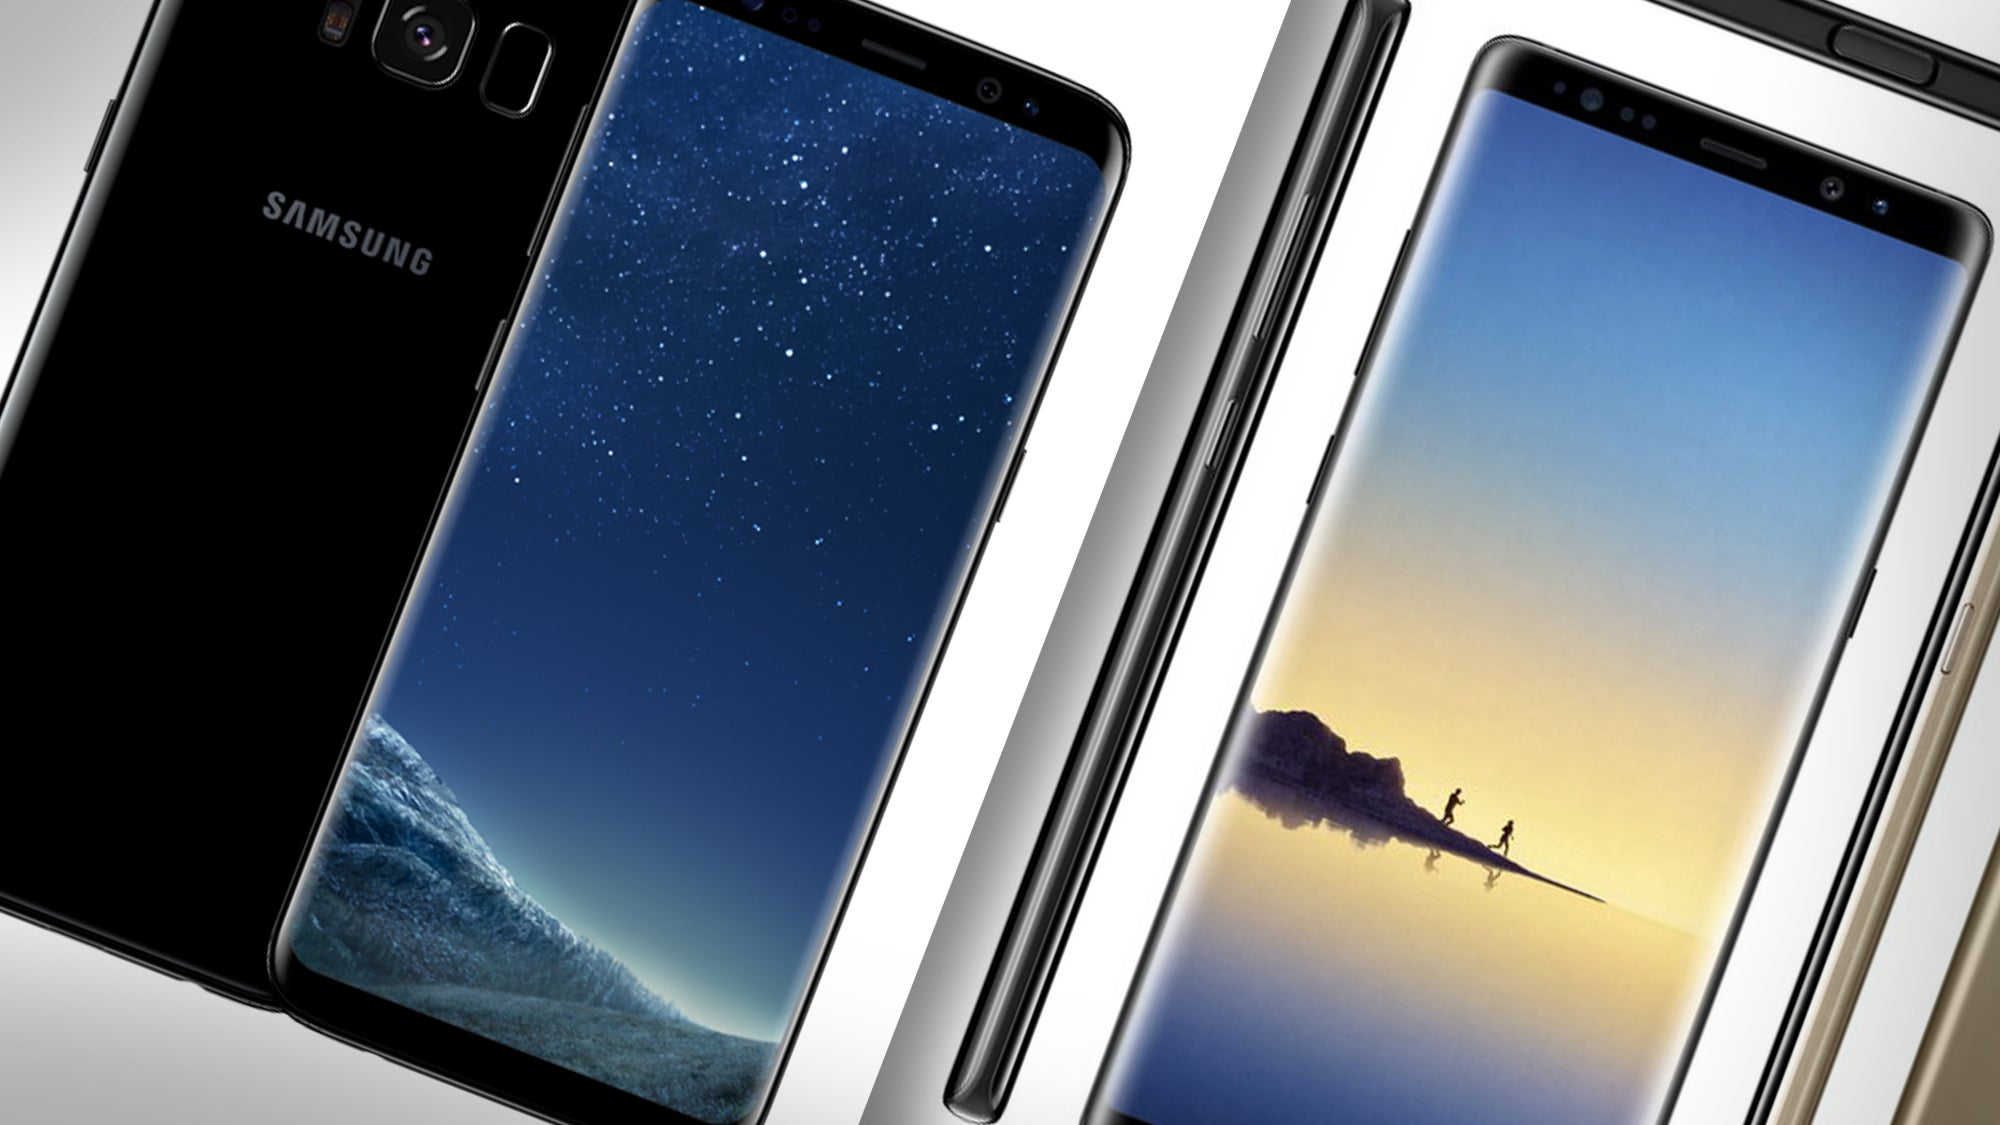 samsung galaxy note 8 vs galaxy s8 what 39 s the difference. Black Bedroom Furniture Sets. Home Design Ideas